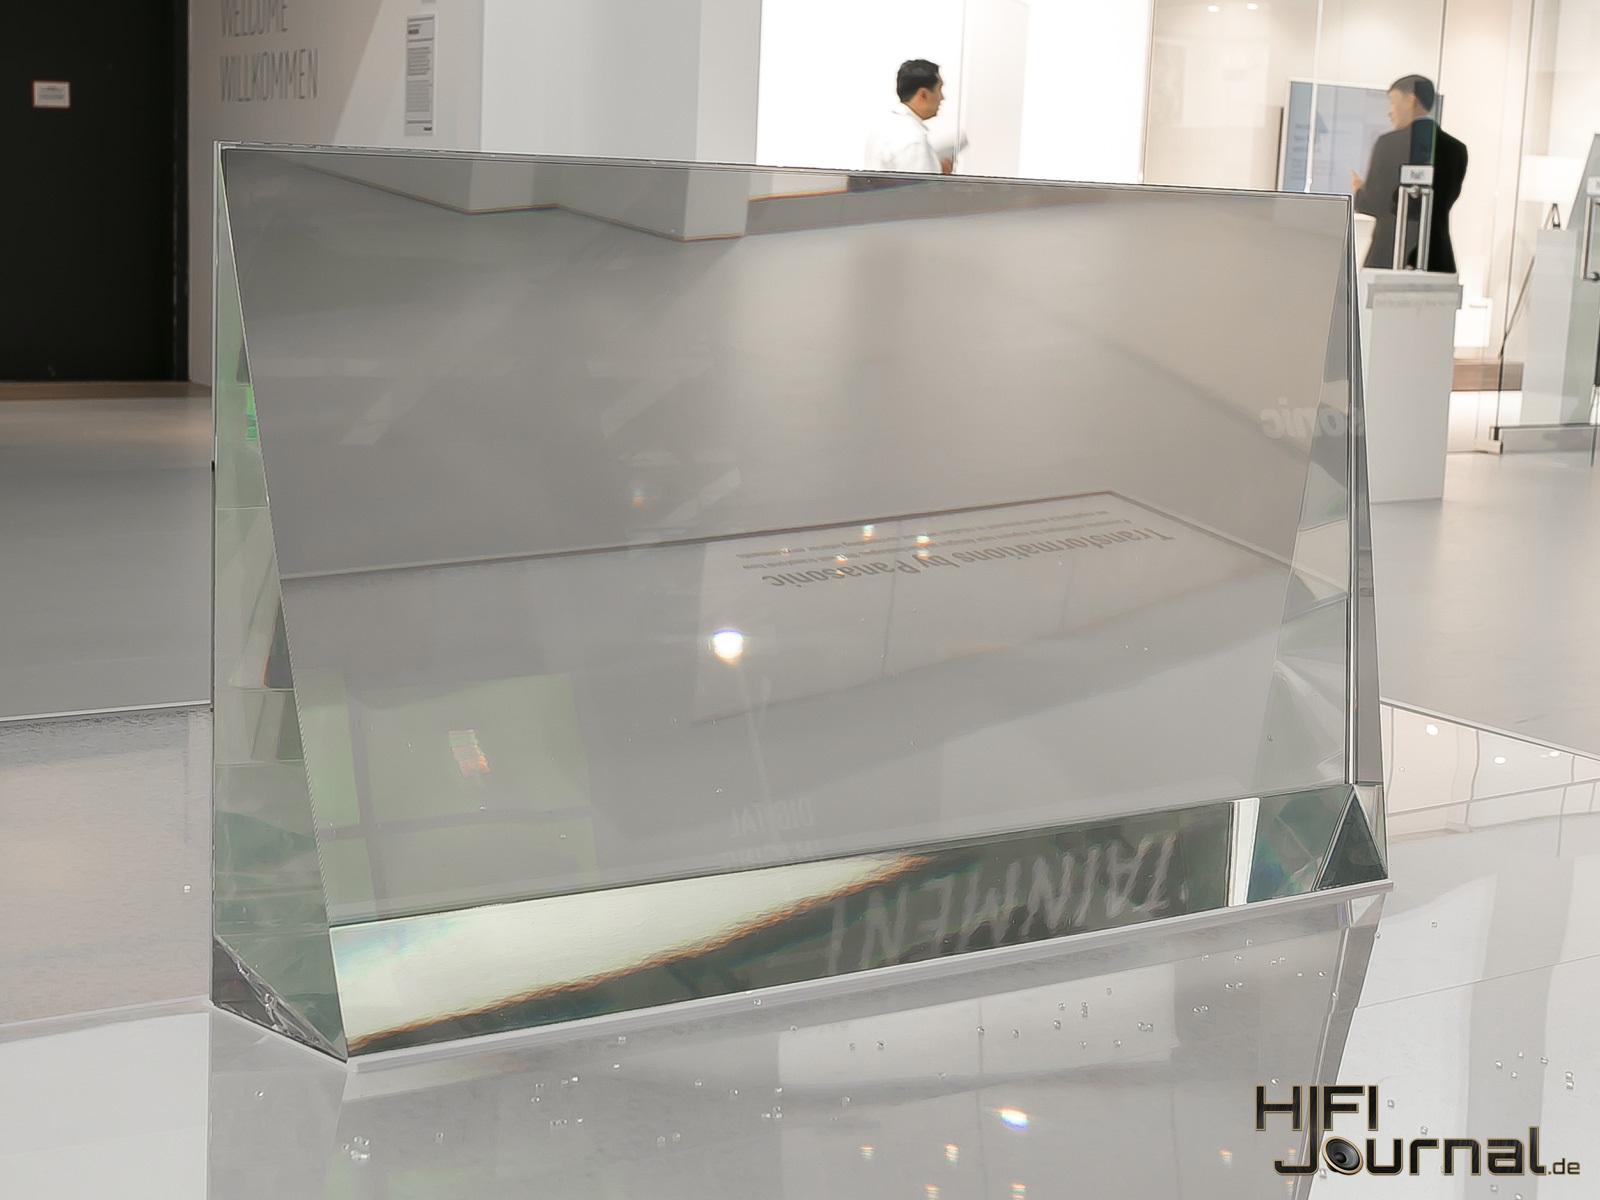 Panasonic transparent OLED 03